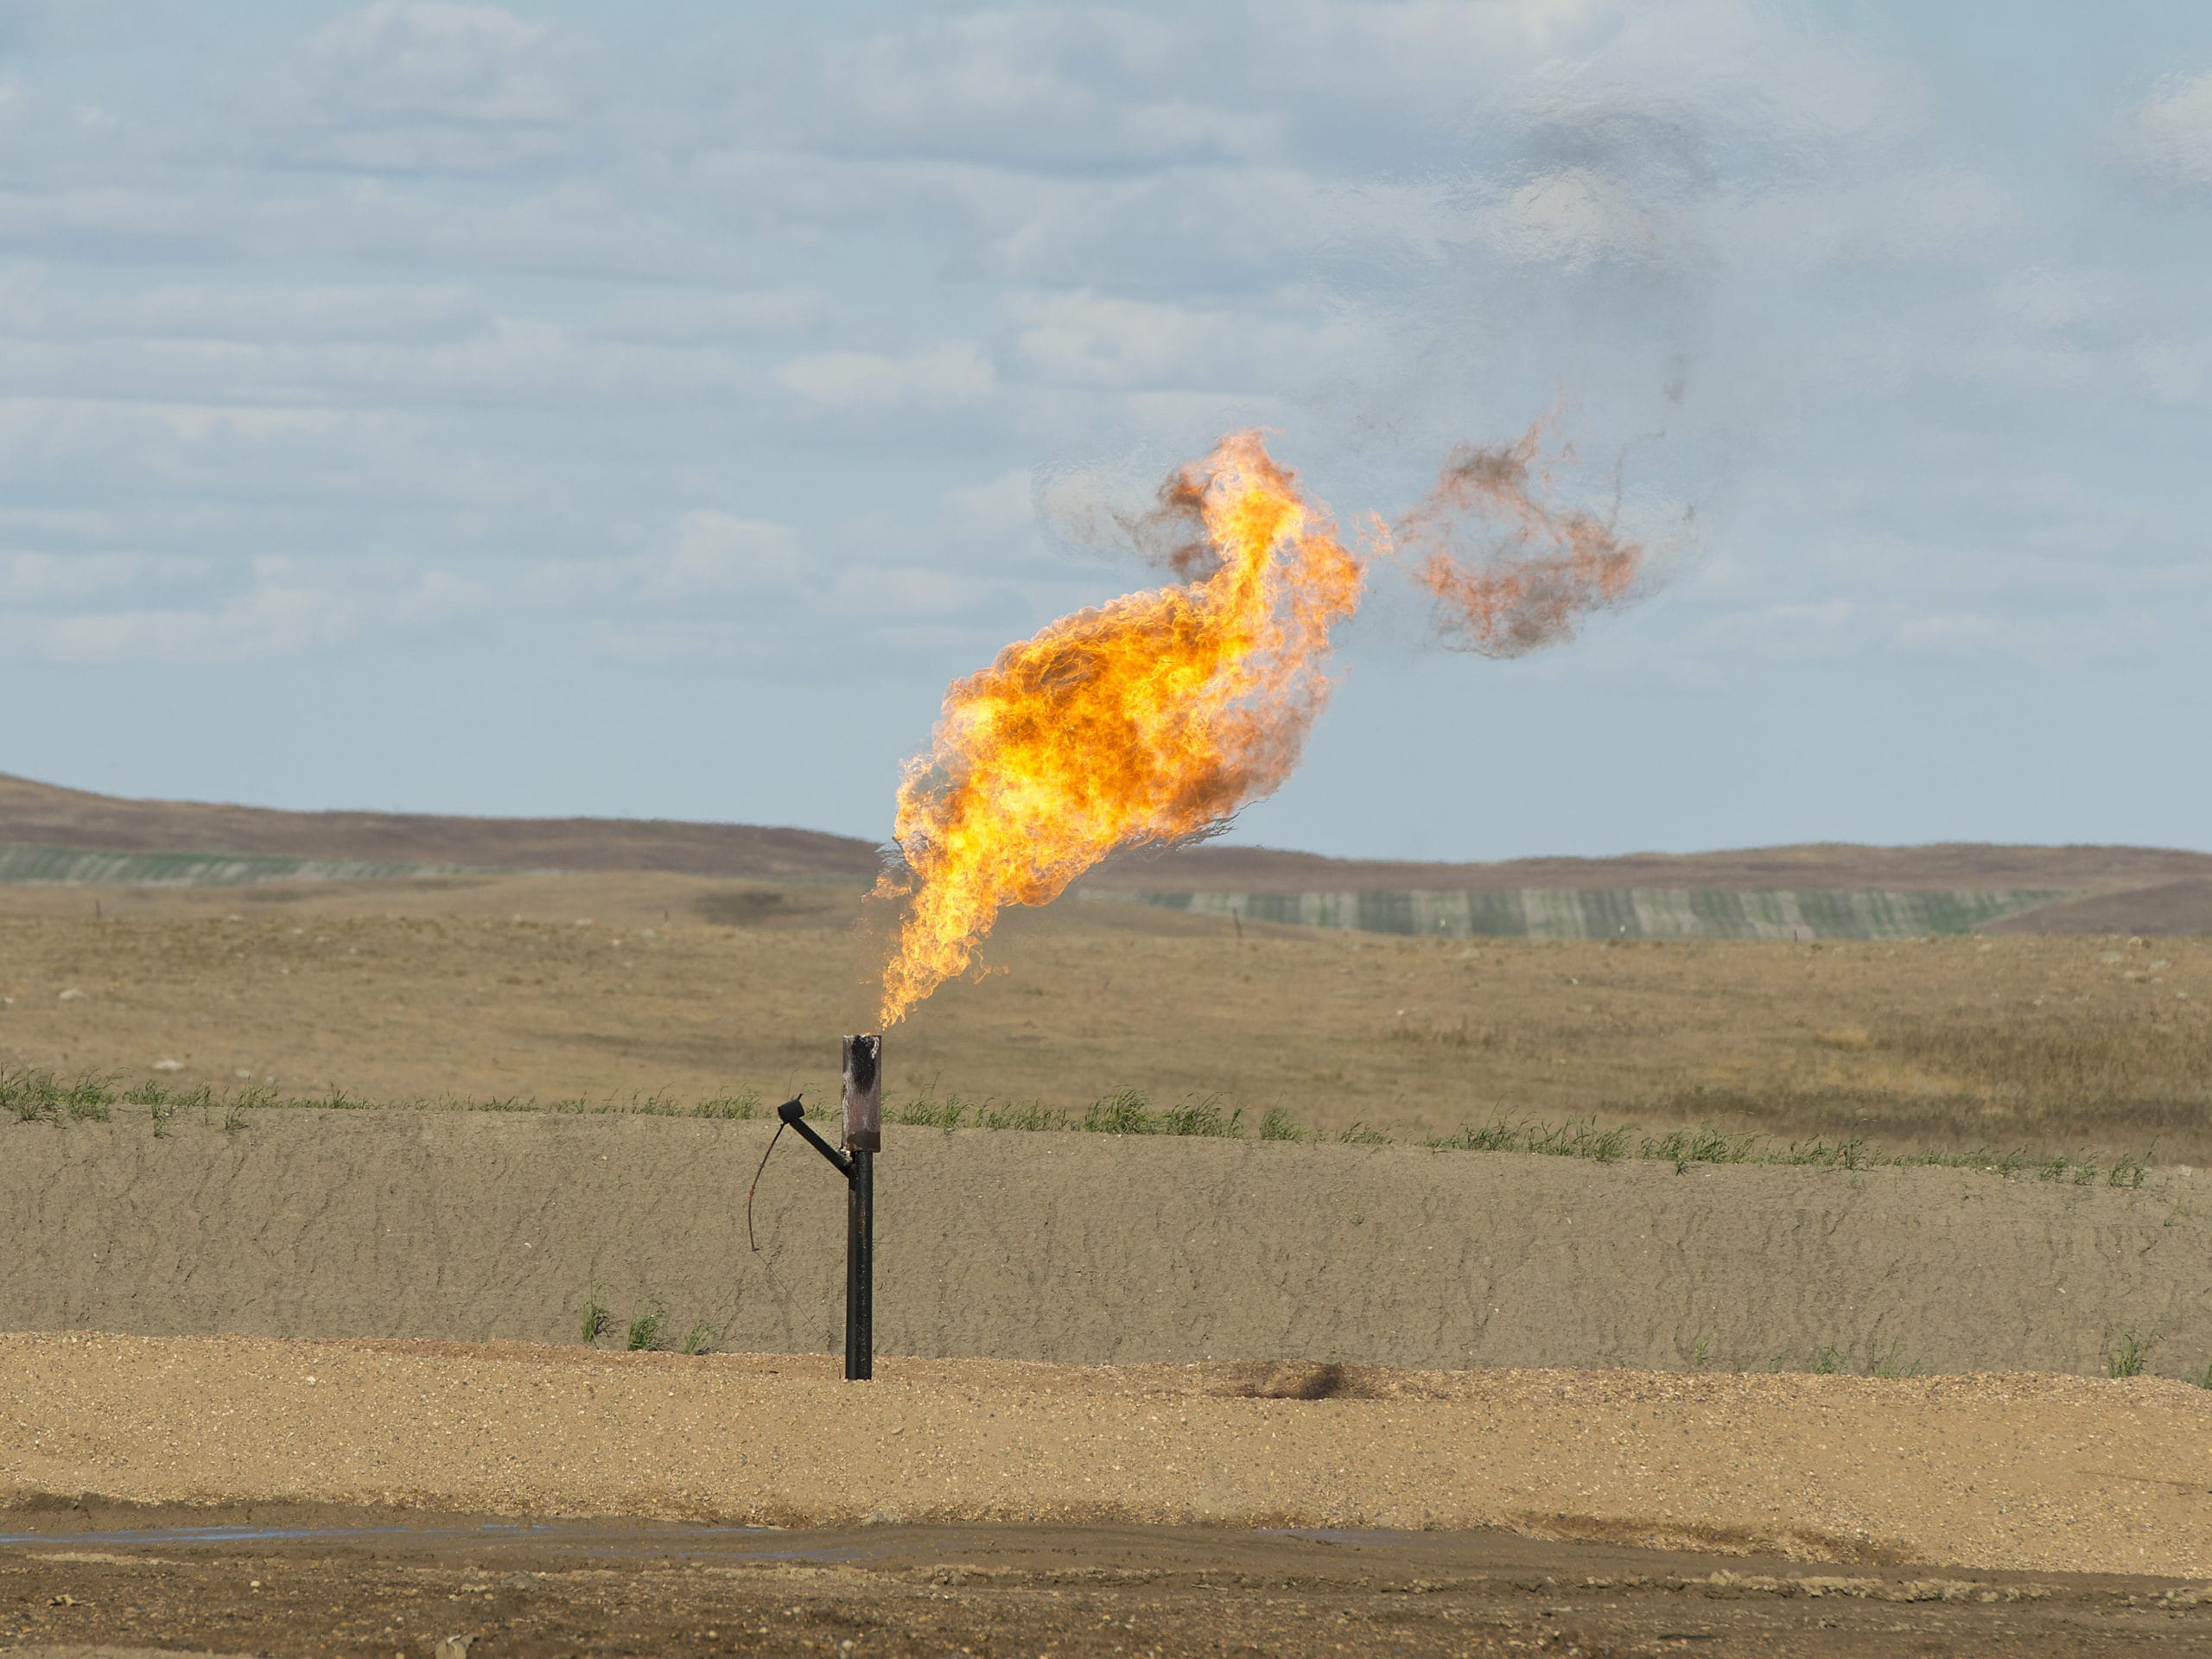 CASPER, Wyo. — Wyoming Governor Mark Gordon signed House Bill 189 into law on Thursday, April 15, legislation which will exempt the use of natural g